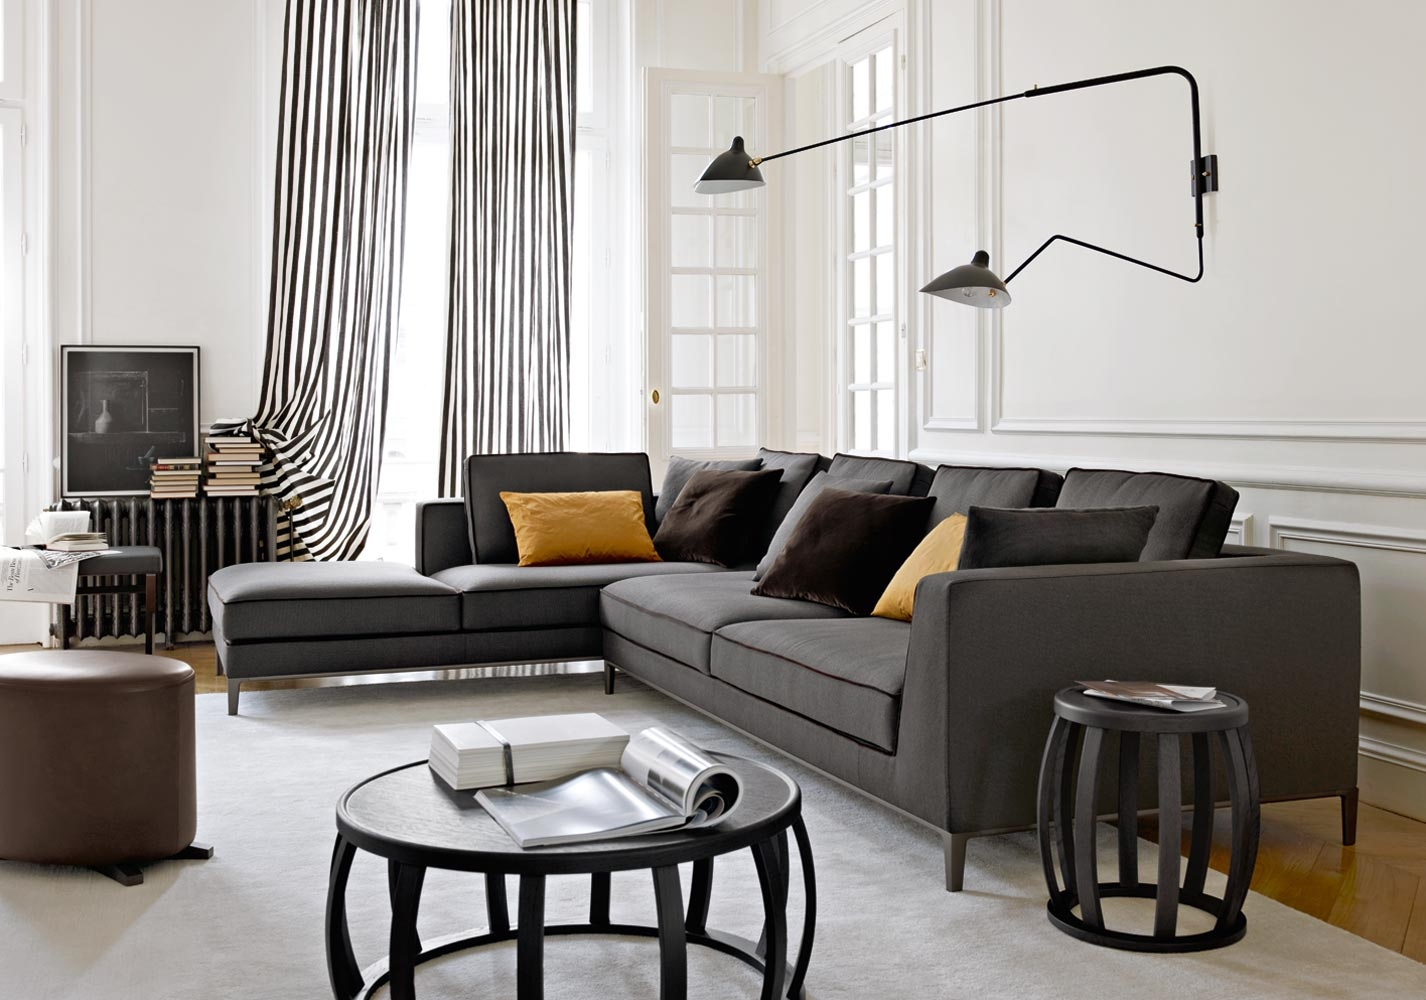 dark grey sofa styling sofas low cost lisboa gray sectional black trim accent pillows interior design